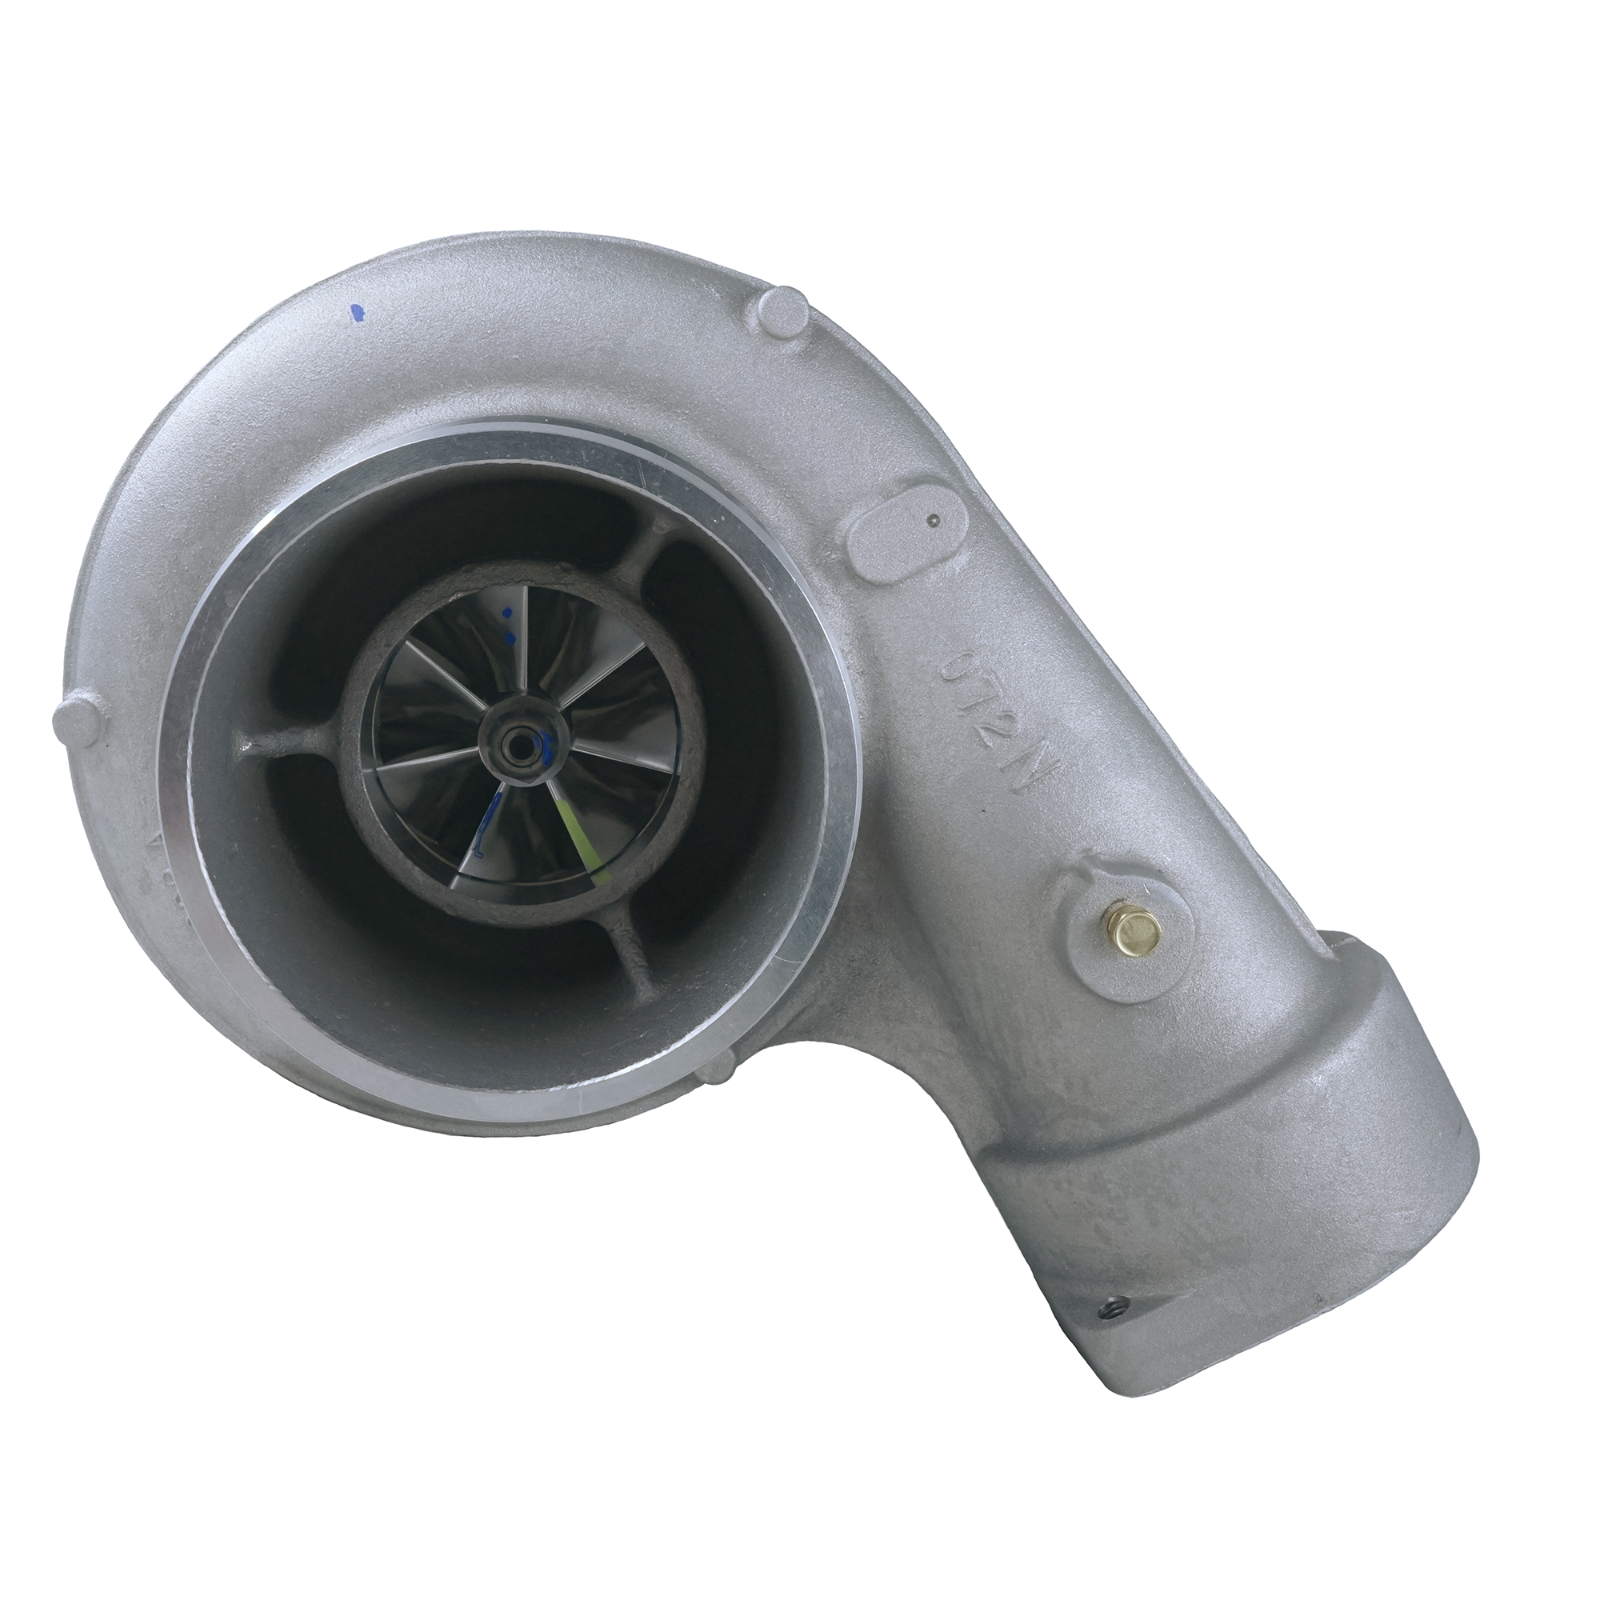 BorgWarner Turbocharger for Caterpillar C15 C16 3406E